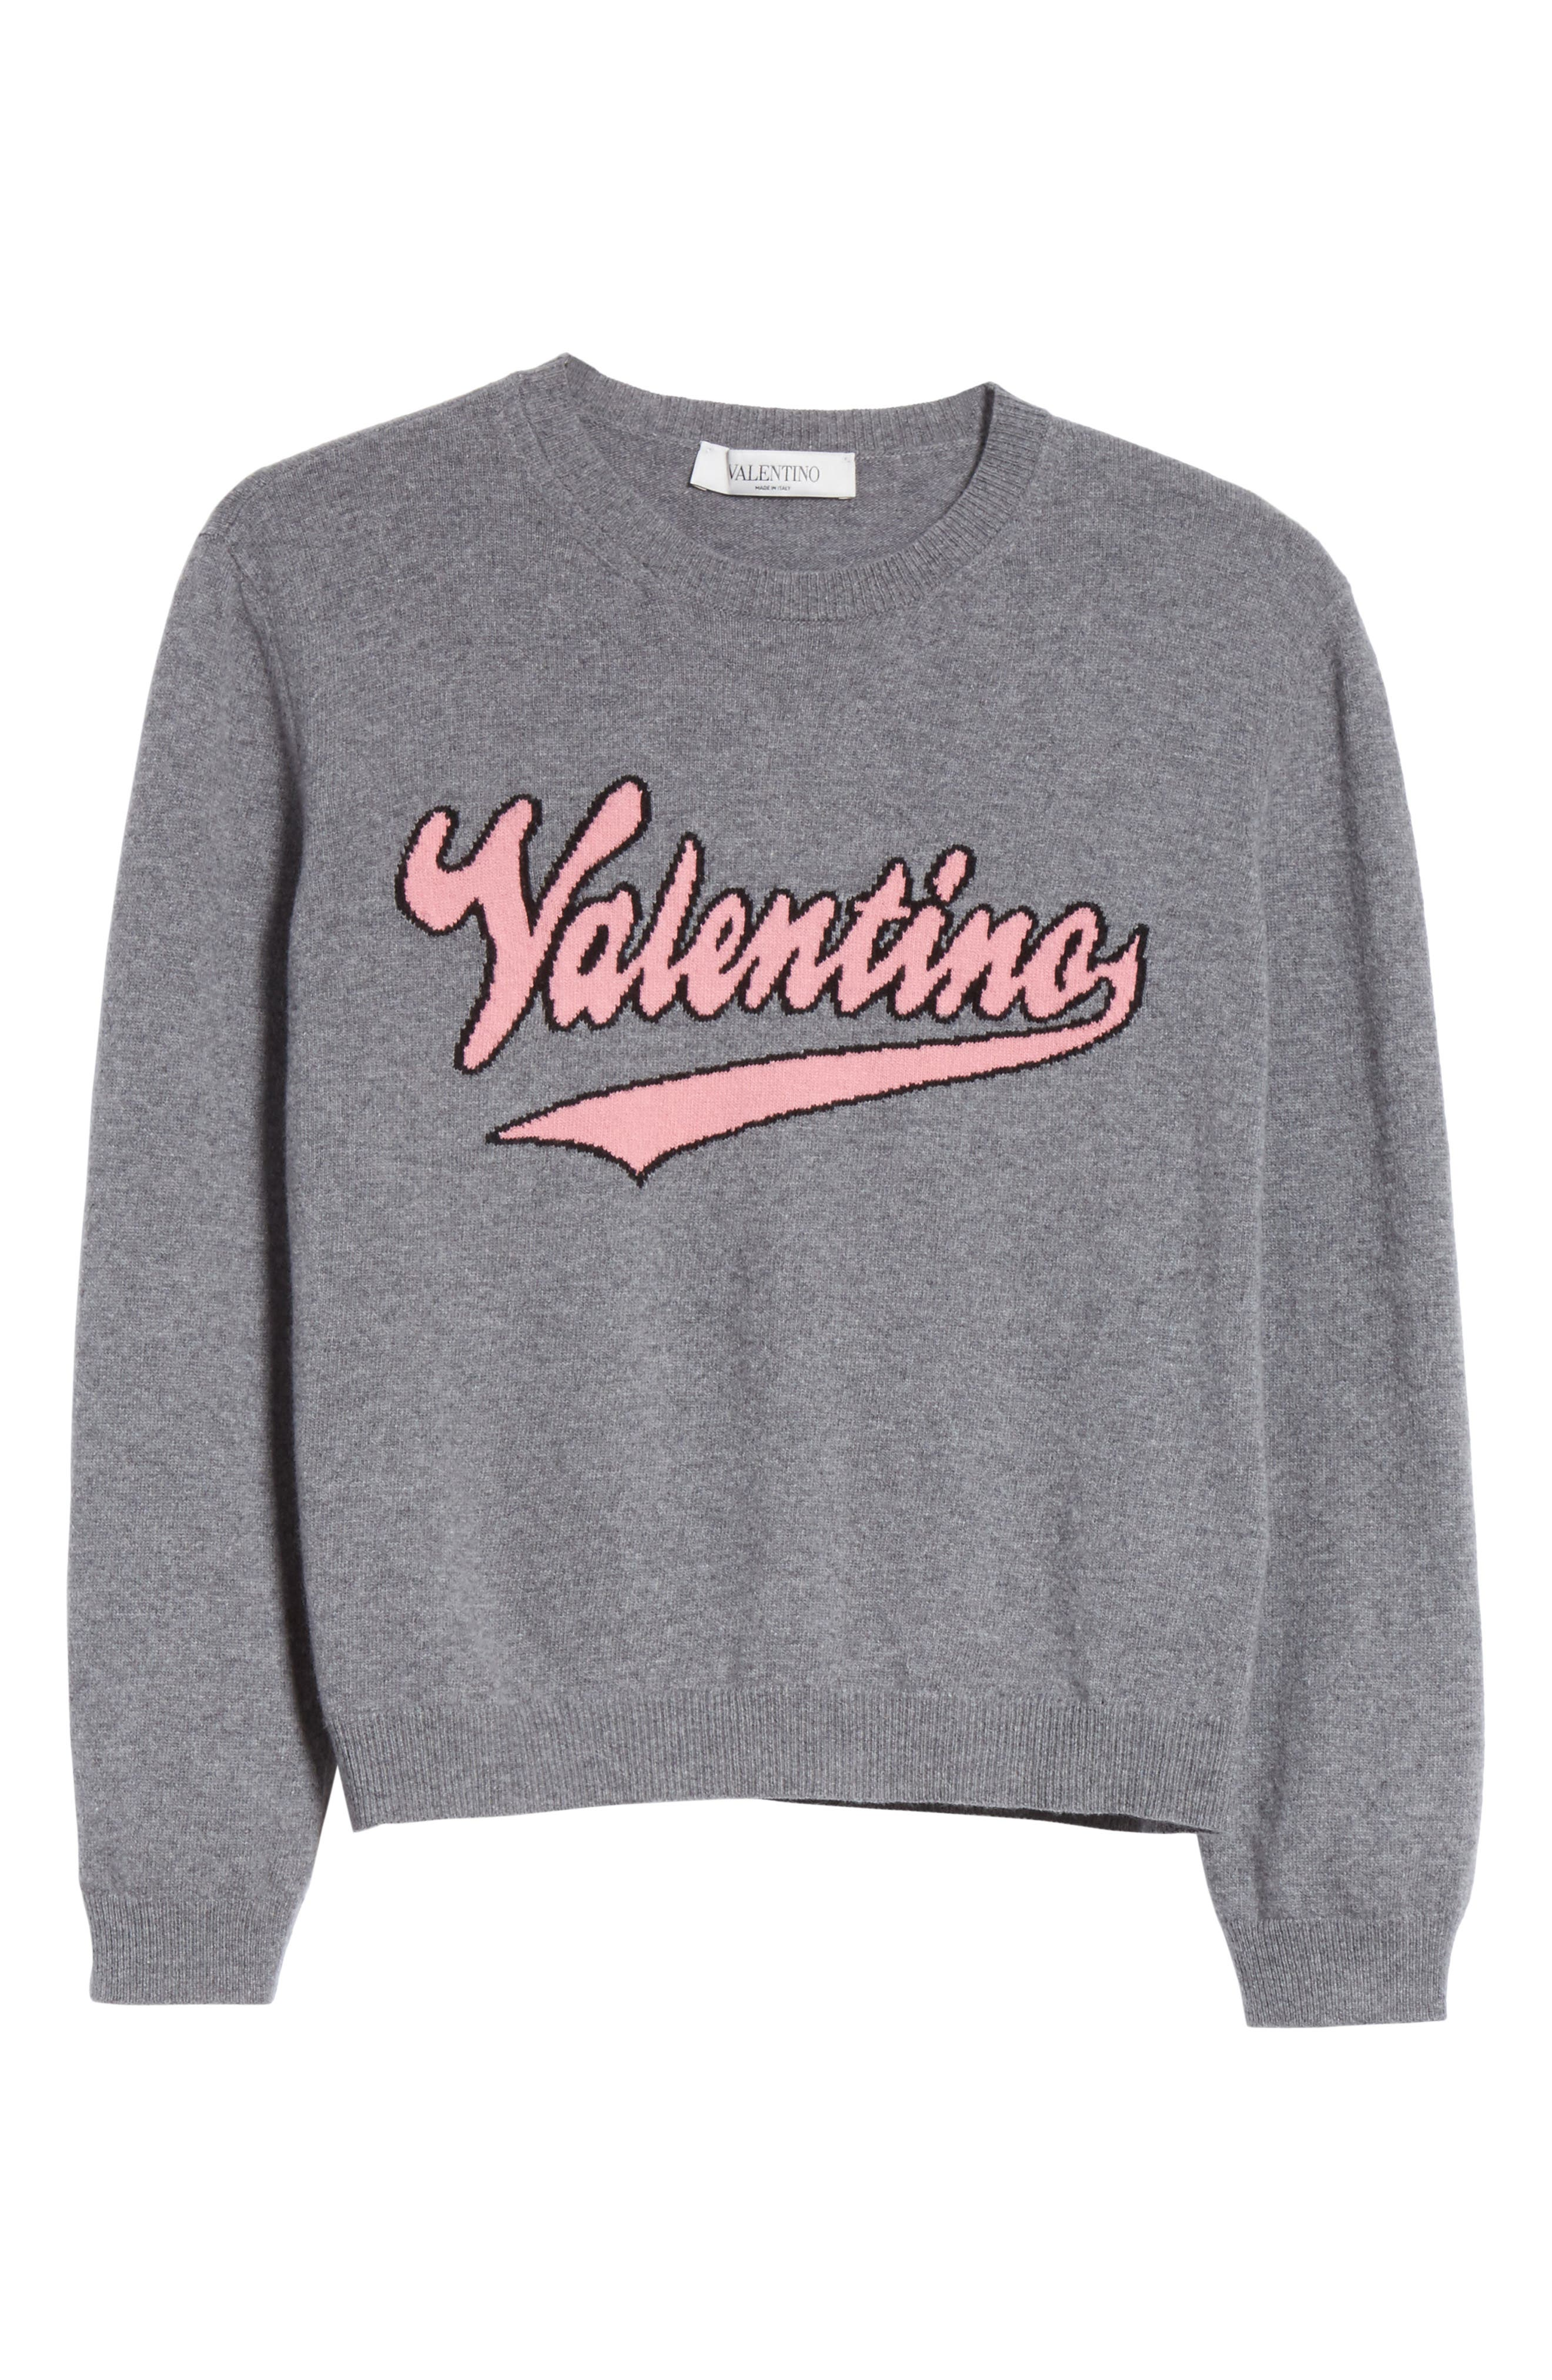 Wool & Cashmere Logo Sweater,                             Alternate thumbnail 6, color,                             030